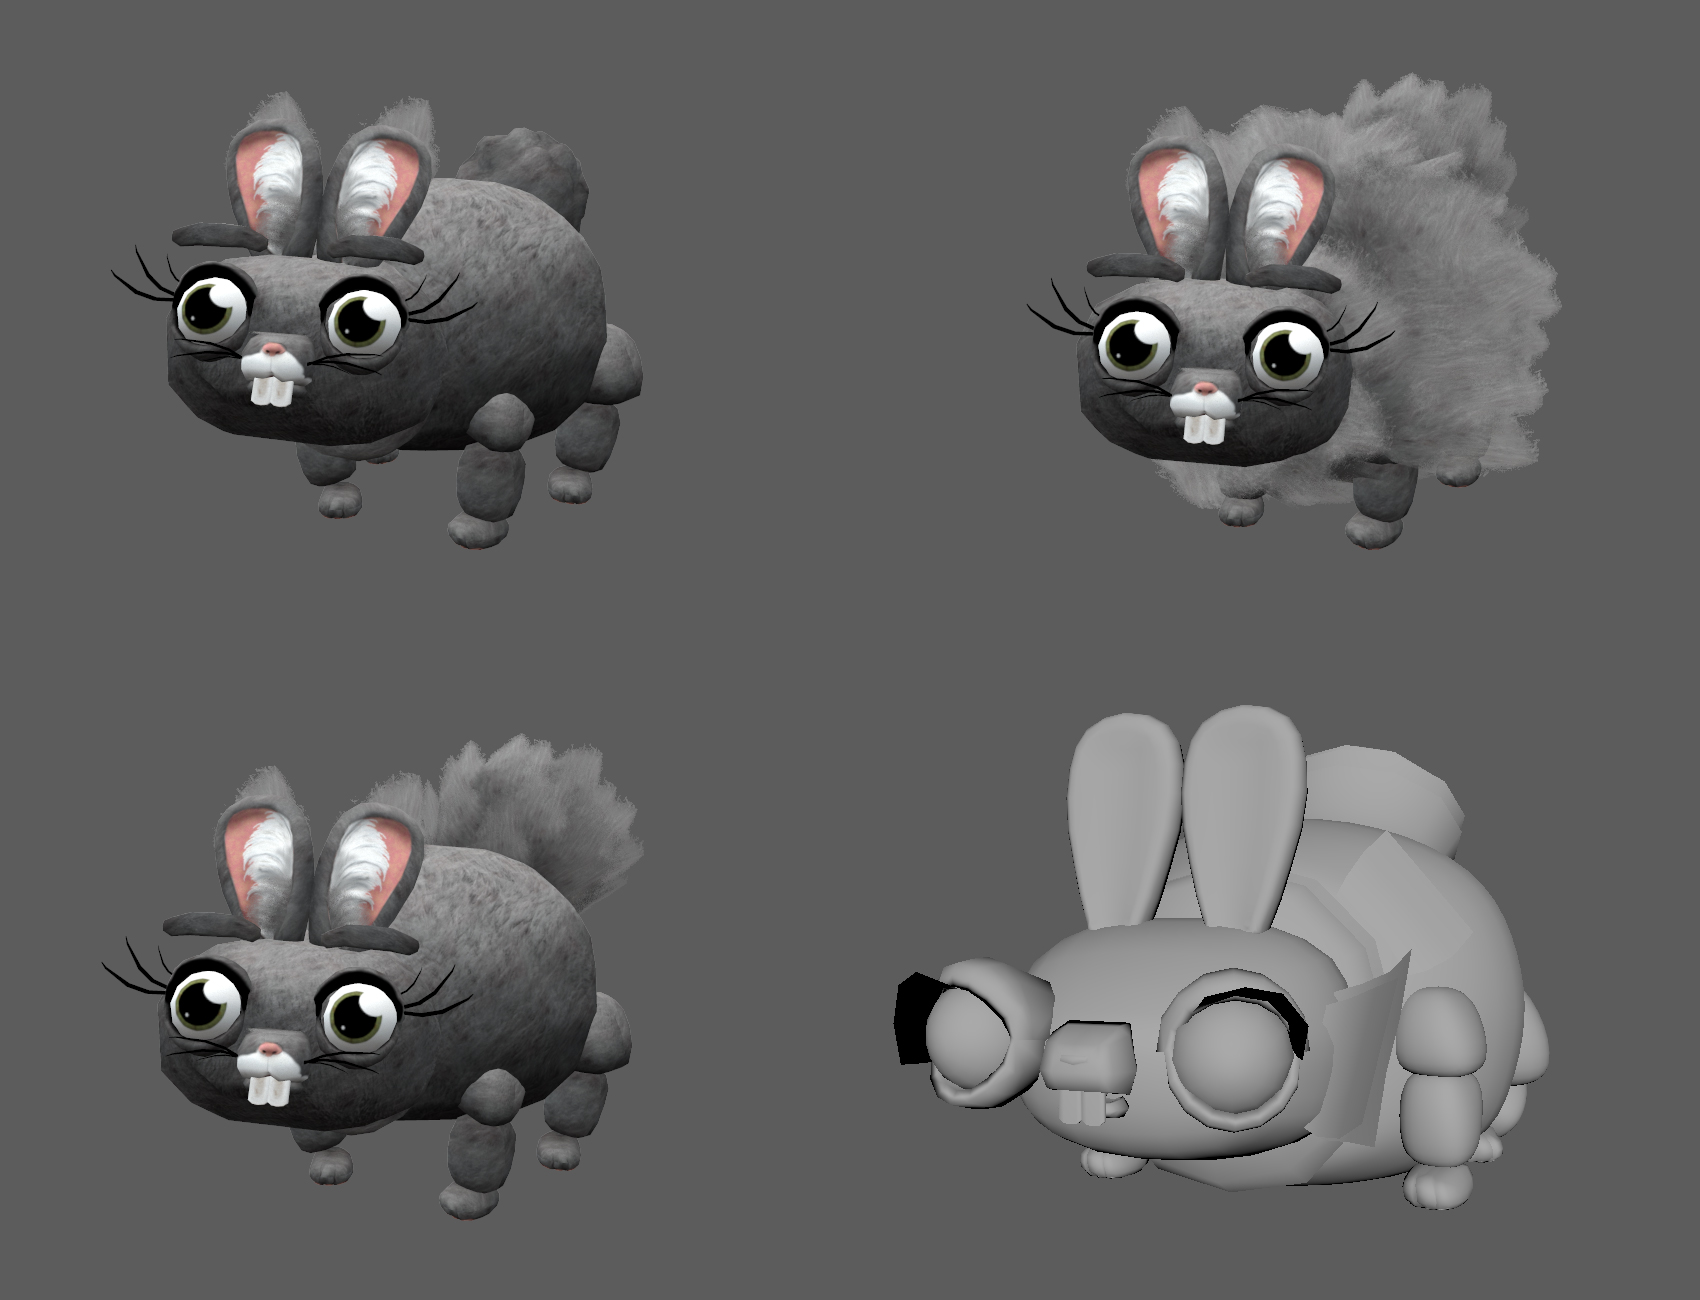 Concept art and early model. Don't let the cuteness fool you.